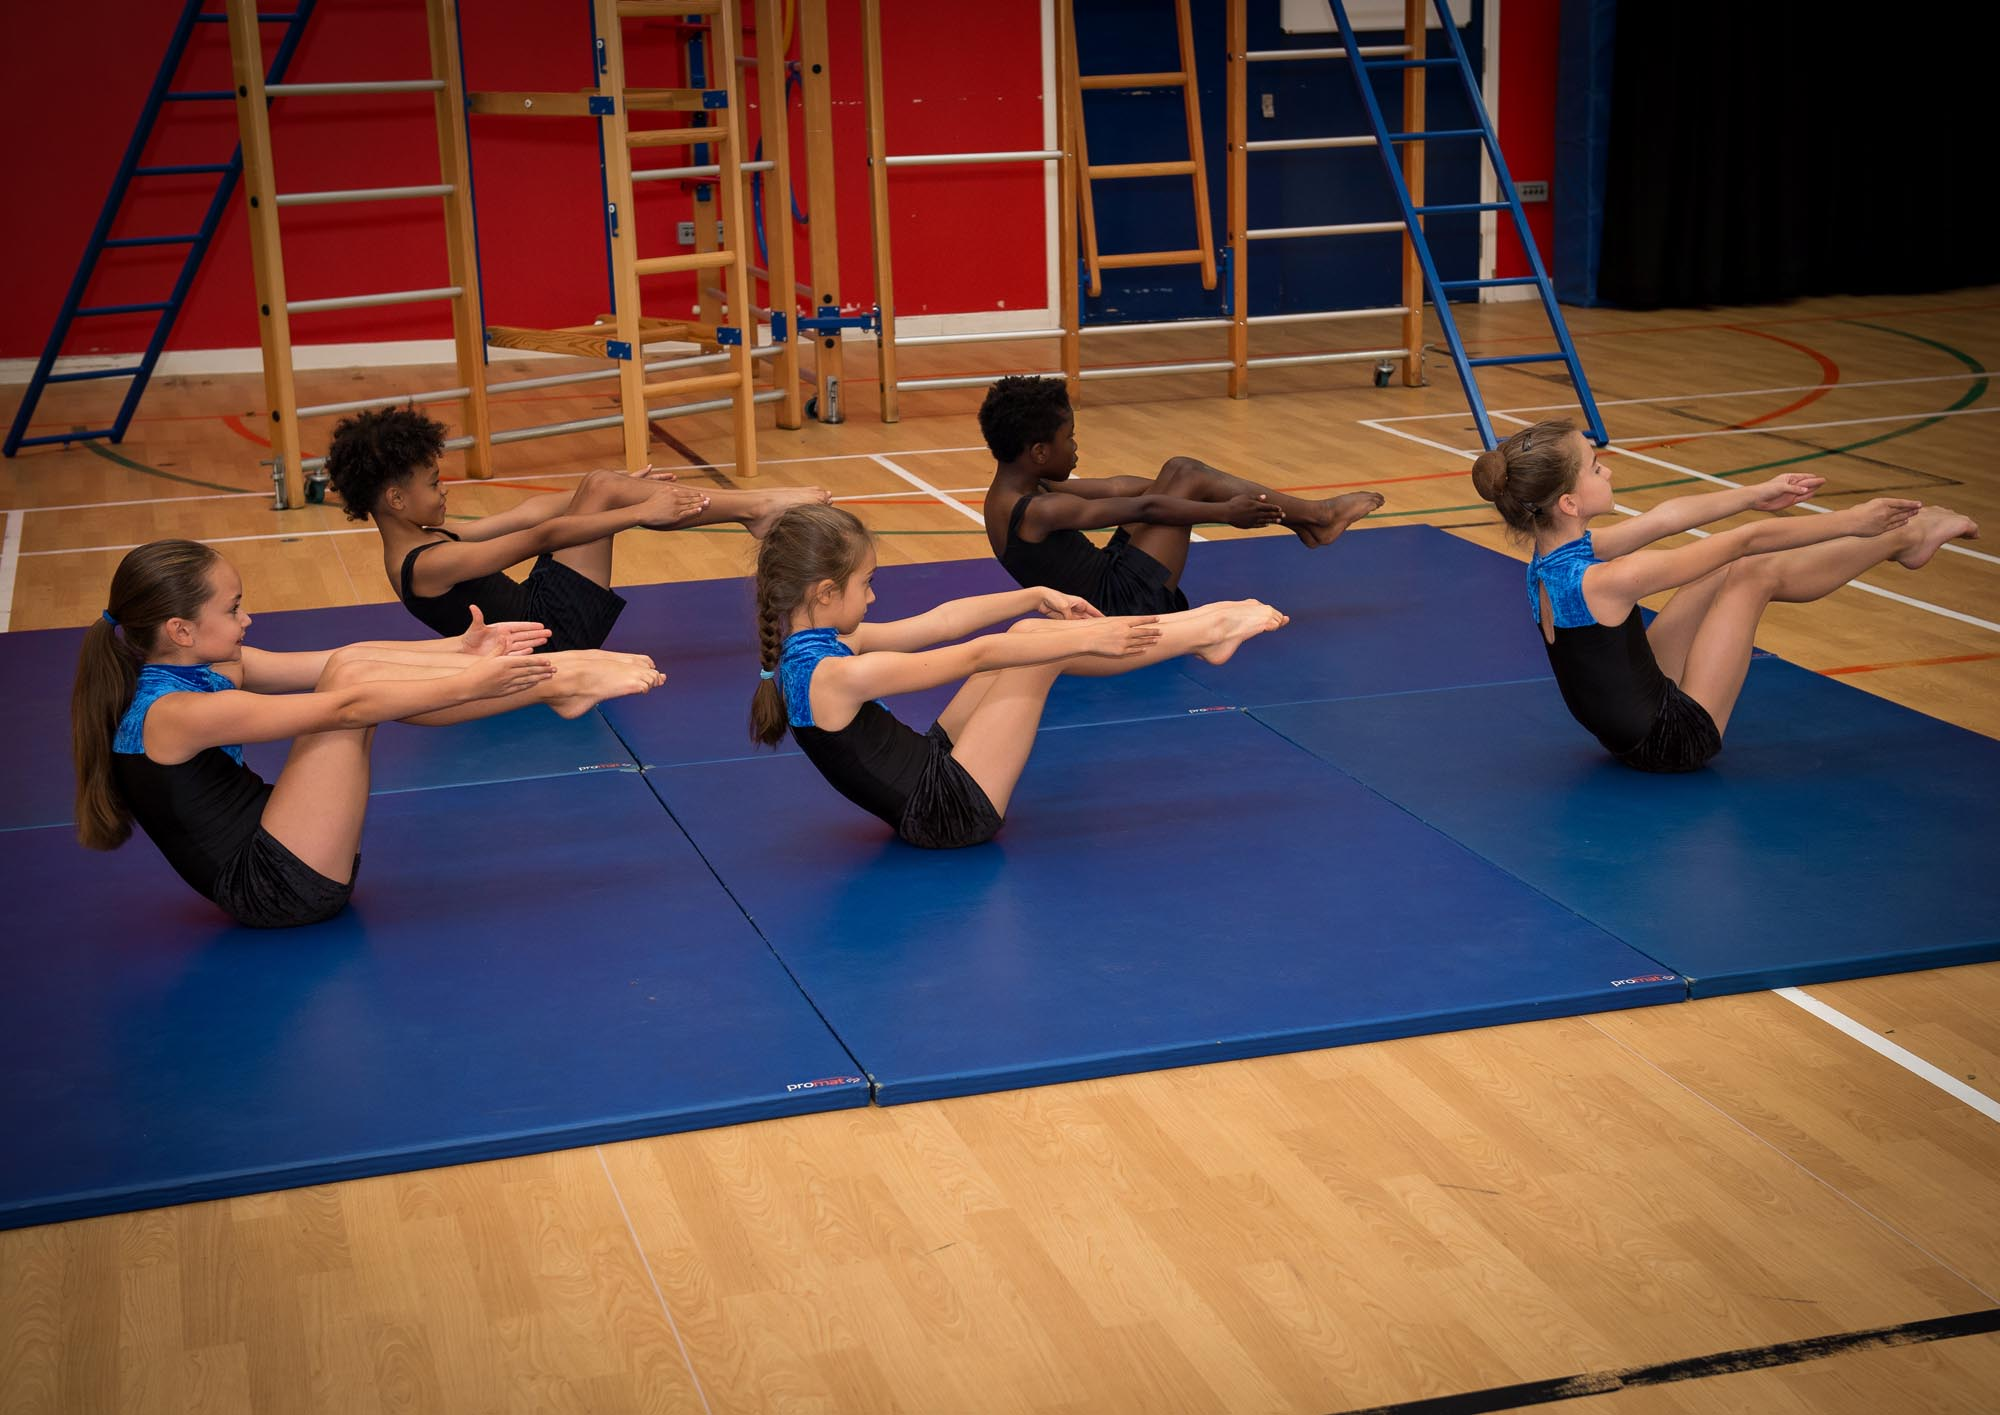 Gym exercise on floor